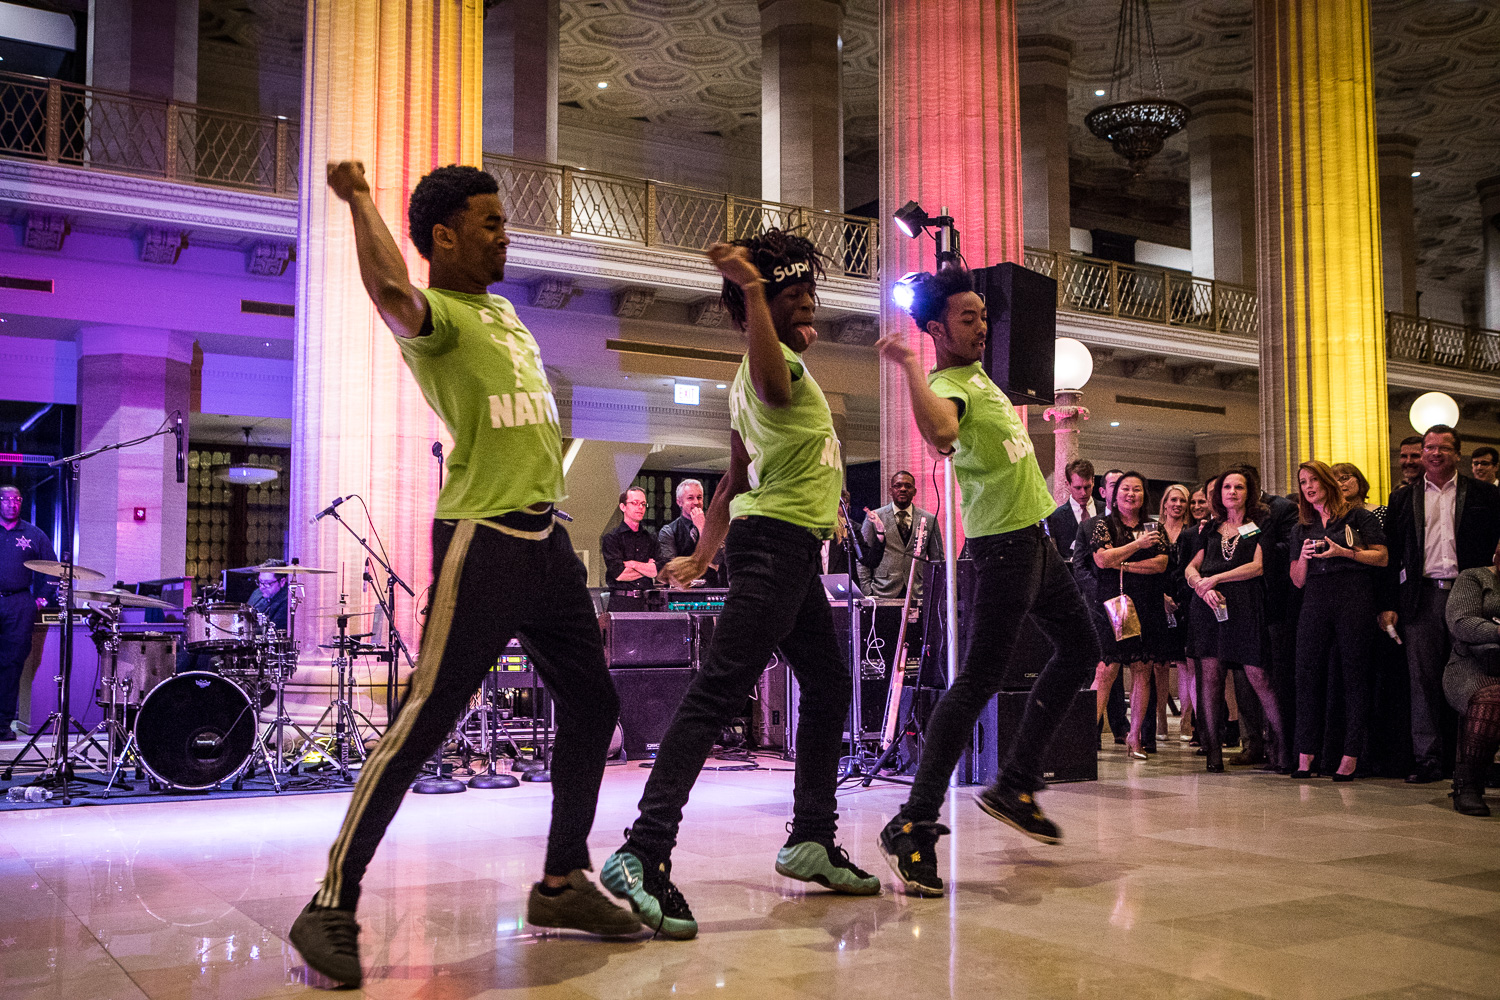 T-up nation, a dance group comprised of teens from cyc-elliott donnelley youth center in bronzeville, performs at shake & stir.